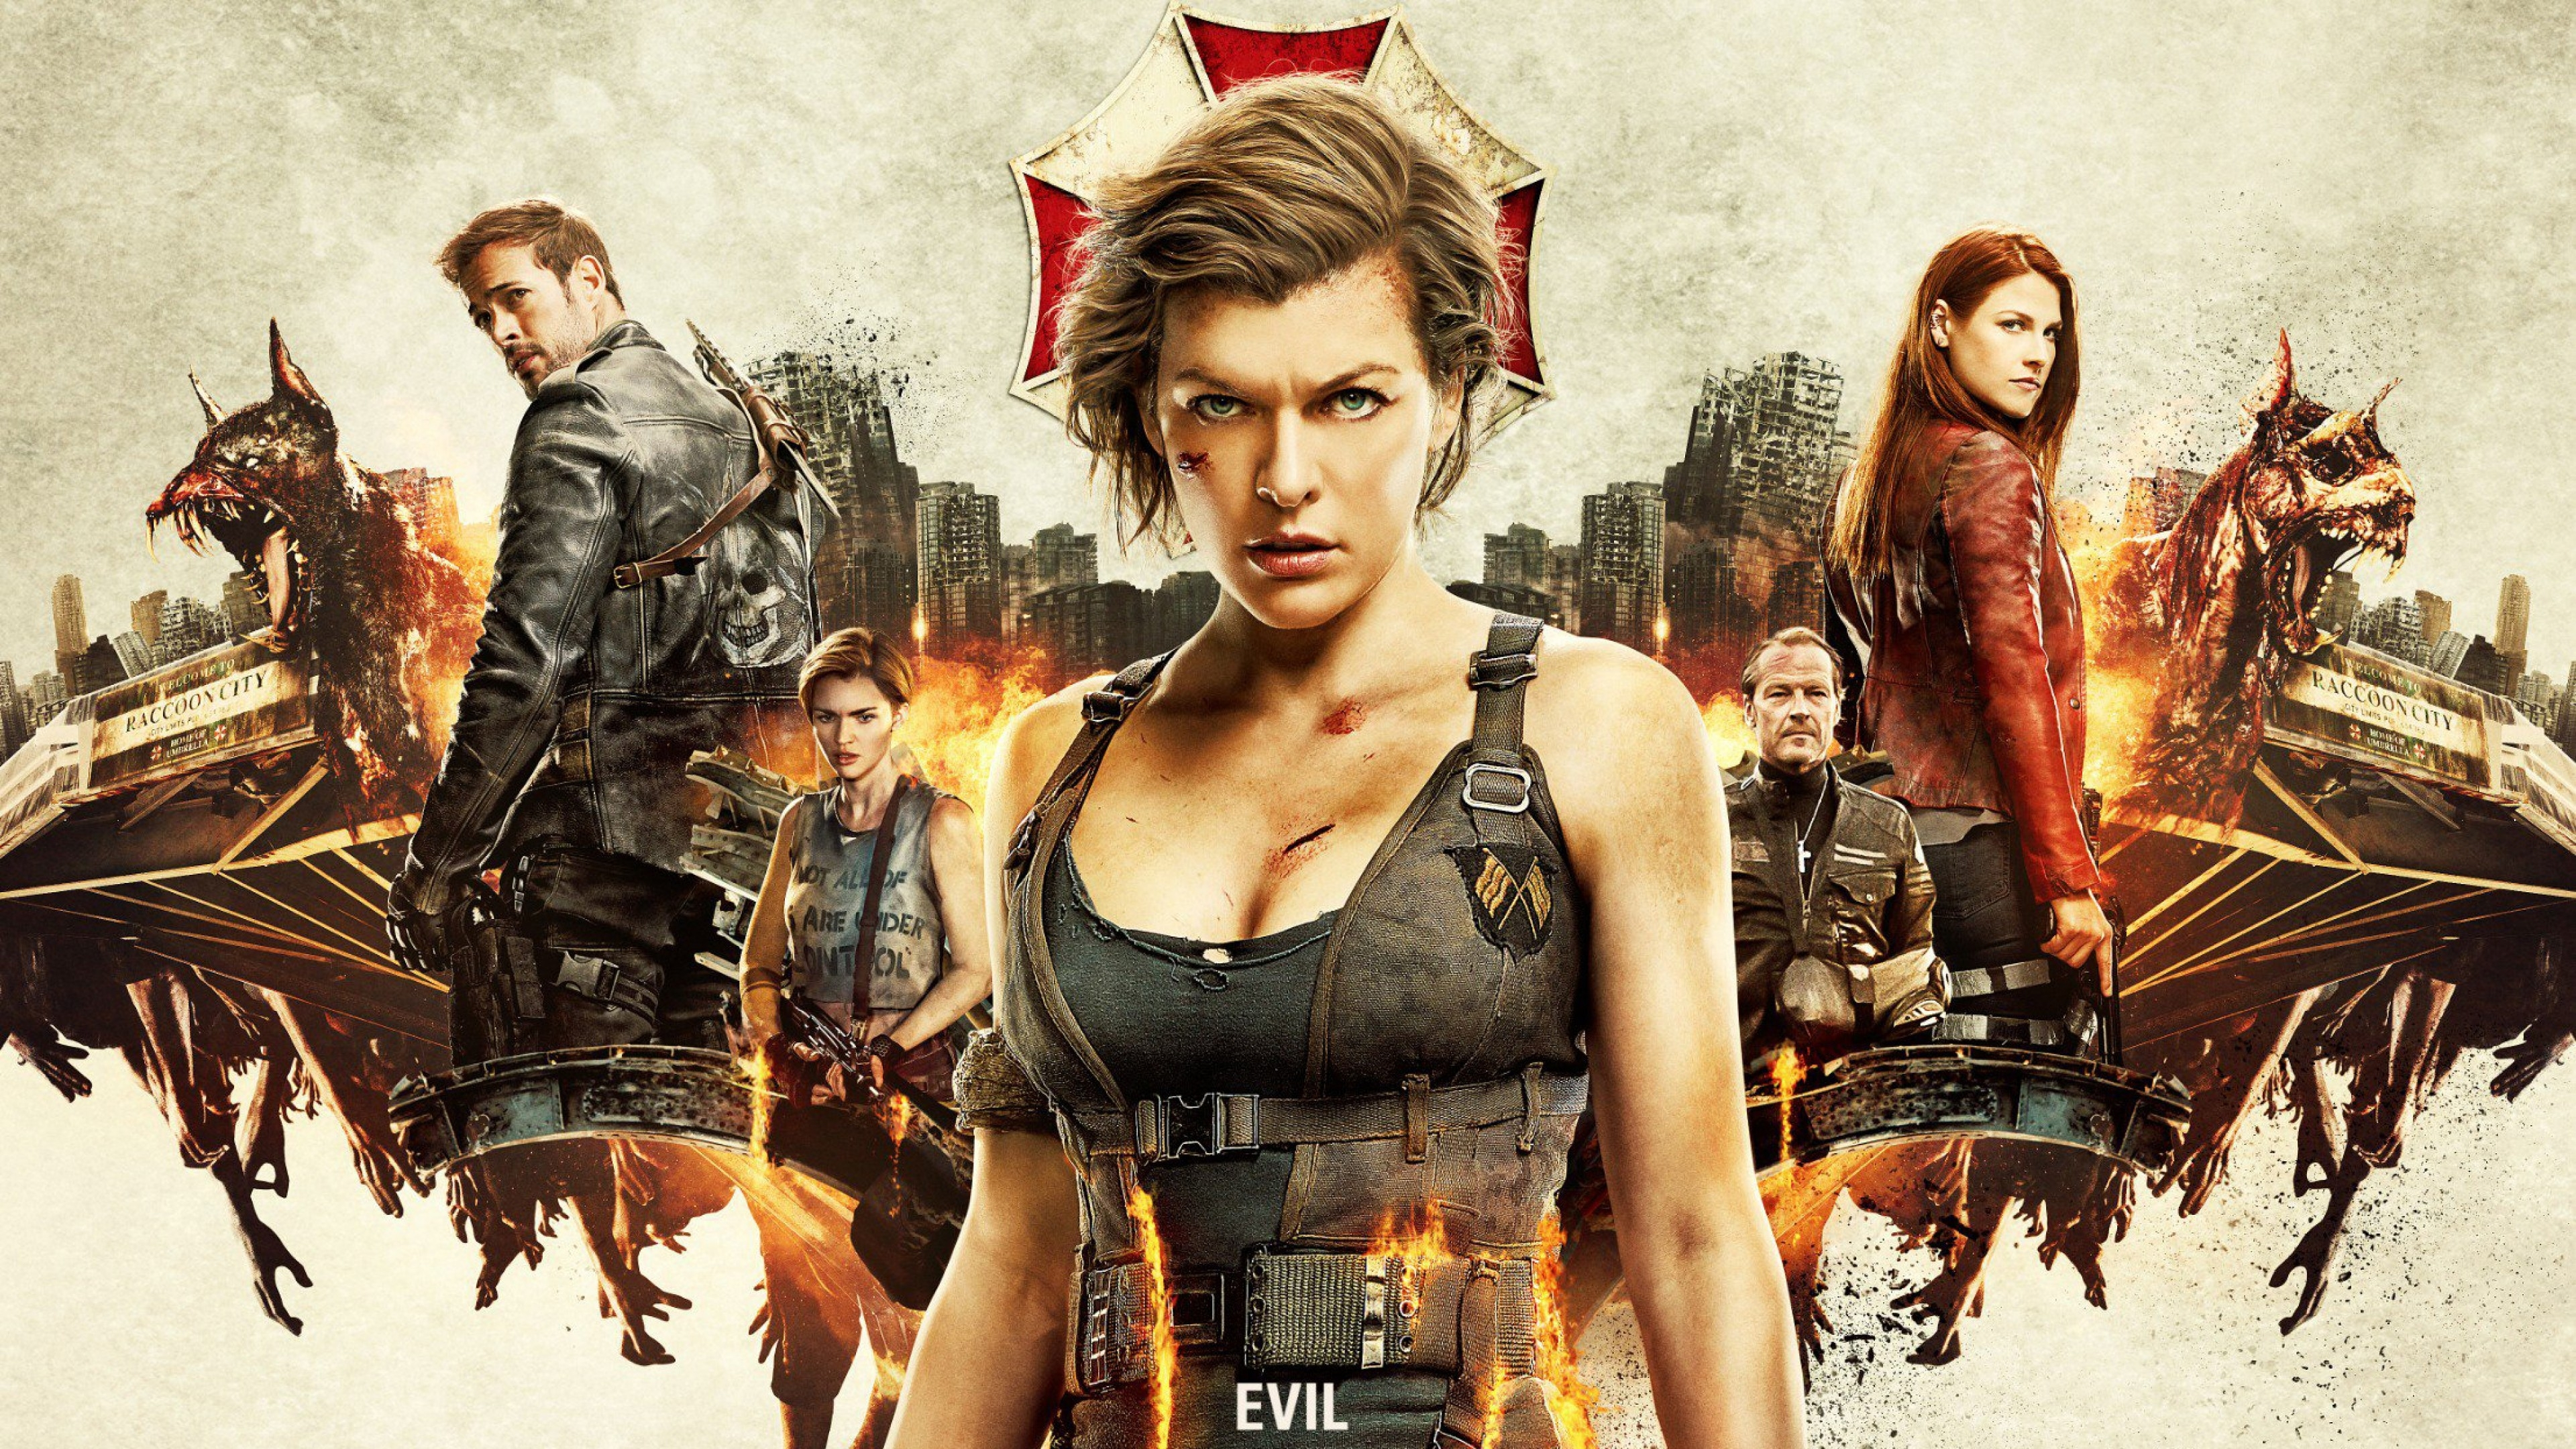 resident evil the final chapter 4k 2016 movie, hd movies, 4k